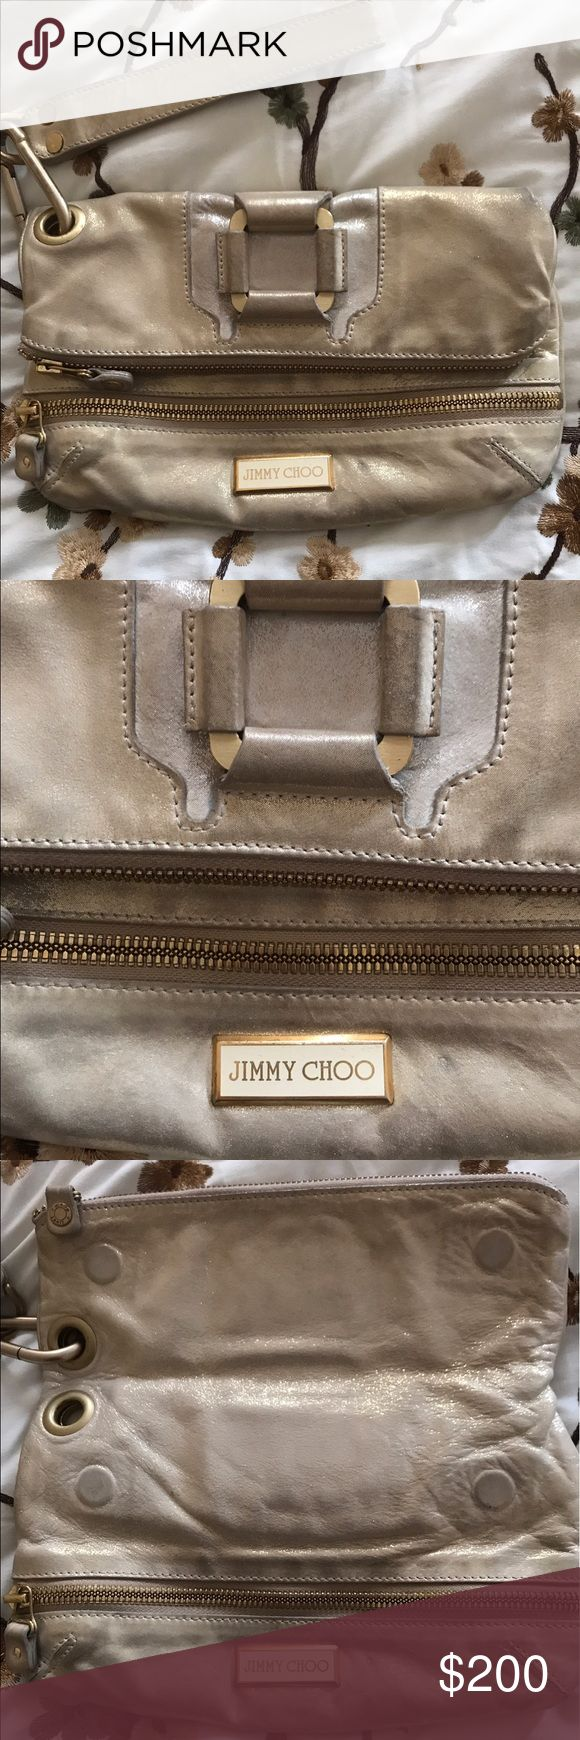 """😍Jimmy Choo """" Marin """" clutch PRICE FIRM ! Love this clutch ! I bought it preloved and it has been well kept . Fold over with magnetic and zipper closure .With removable wristlet in a beautiful metallic distressed gold color leather  . Tan suede interior . Gold colored hardware with minor chipping in a few spots .In good preowned condition with normal signs of wear . Jimmy Choo Bags Clutches & Wristlets"""